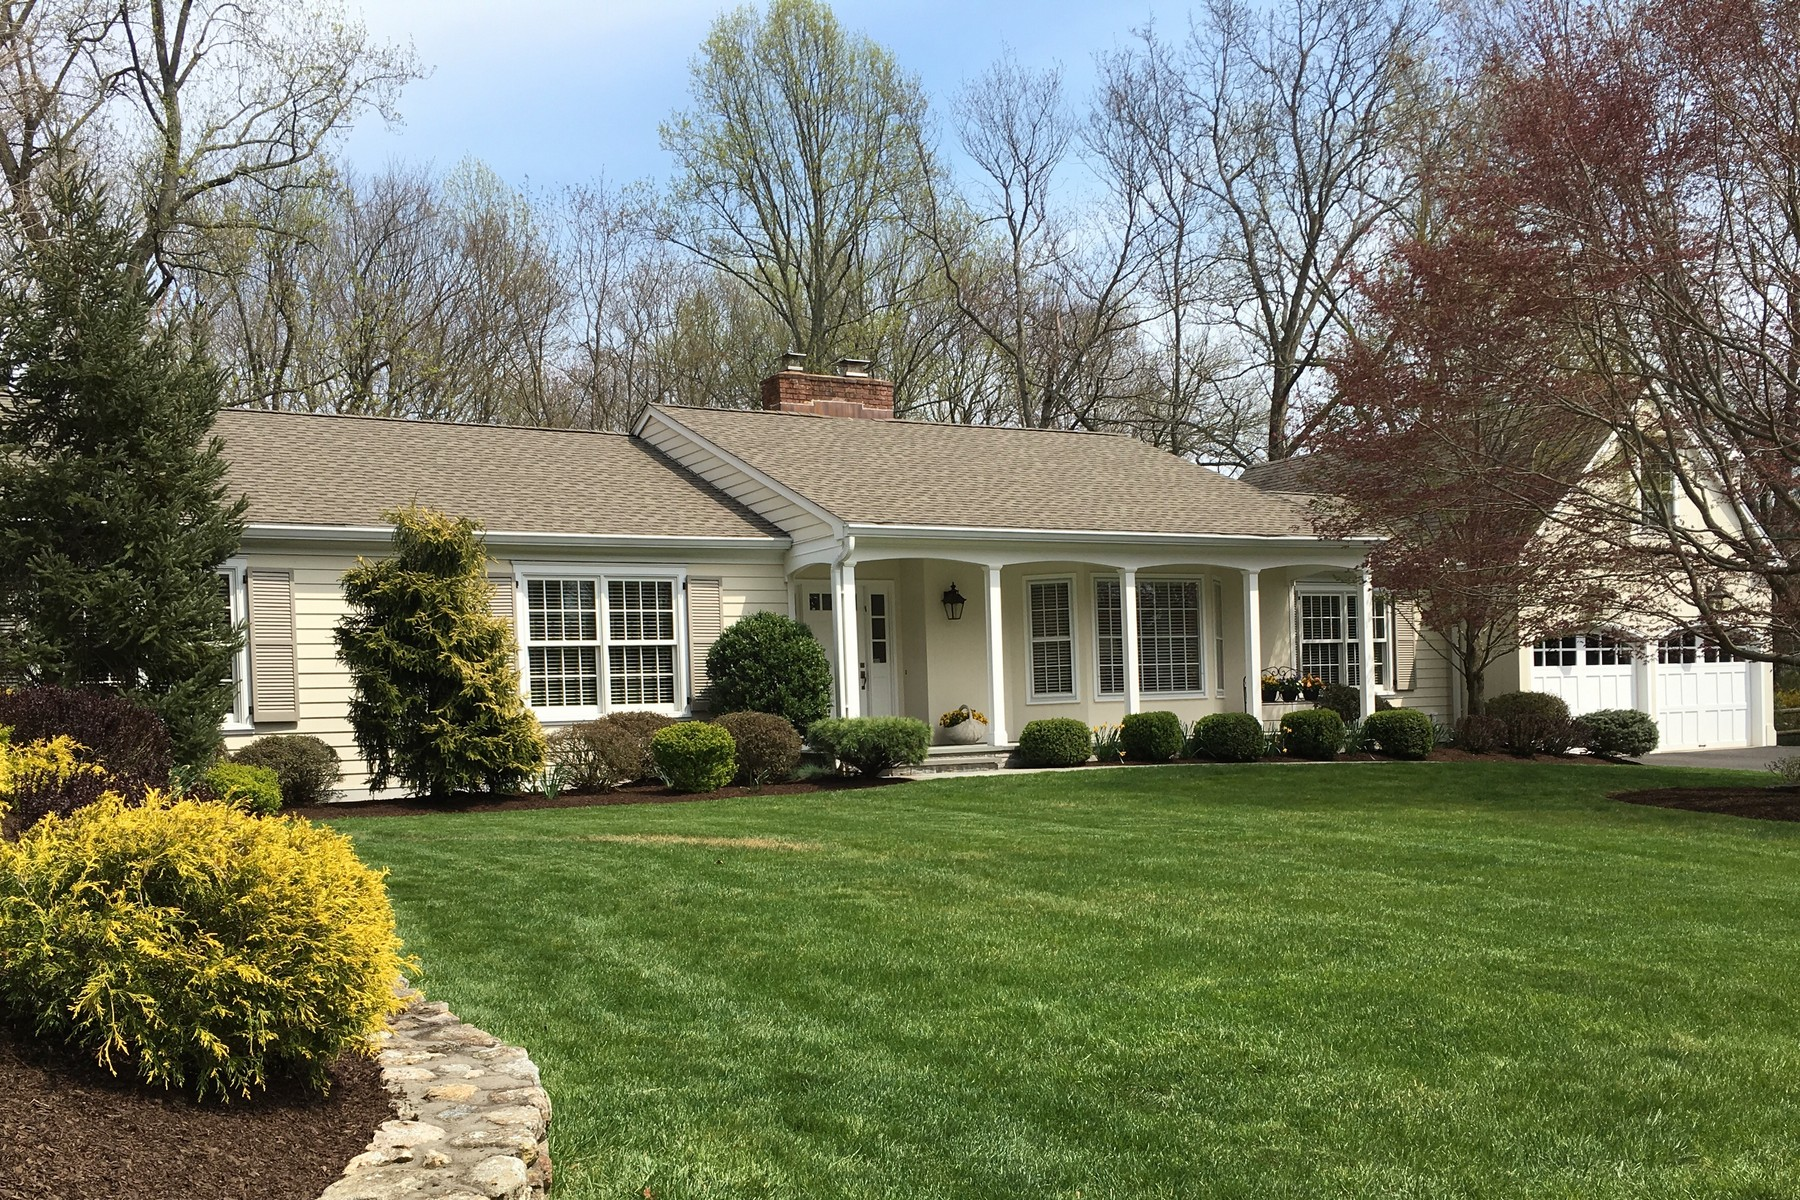 Single Family Home for Sale at SENSATIONAL SOUTHPORT RANCH 130 Daybreak Road Southport, Fairfield, Connecticut, 06890 United States